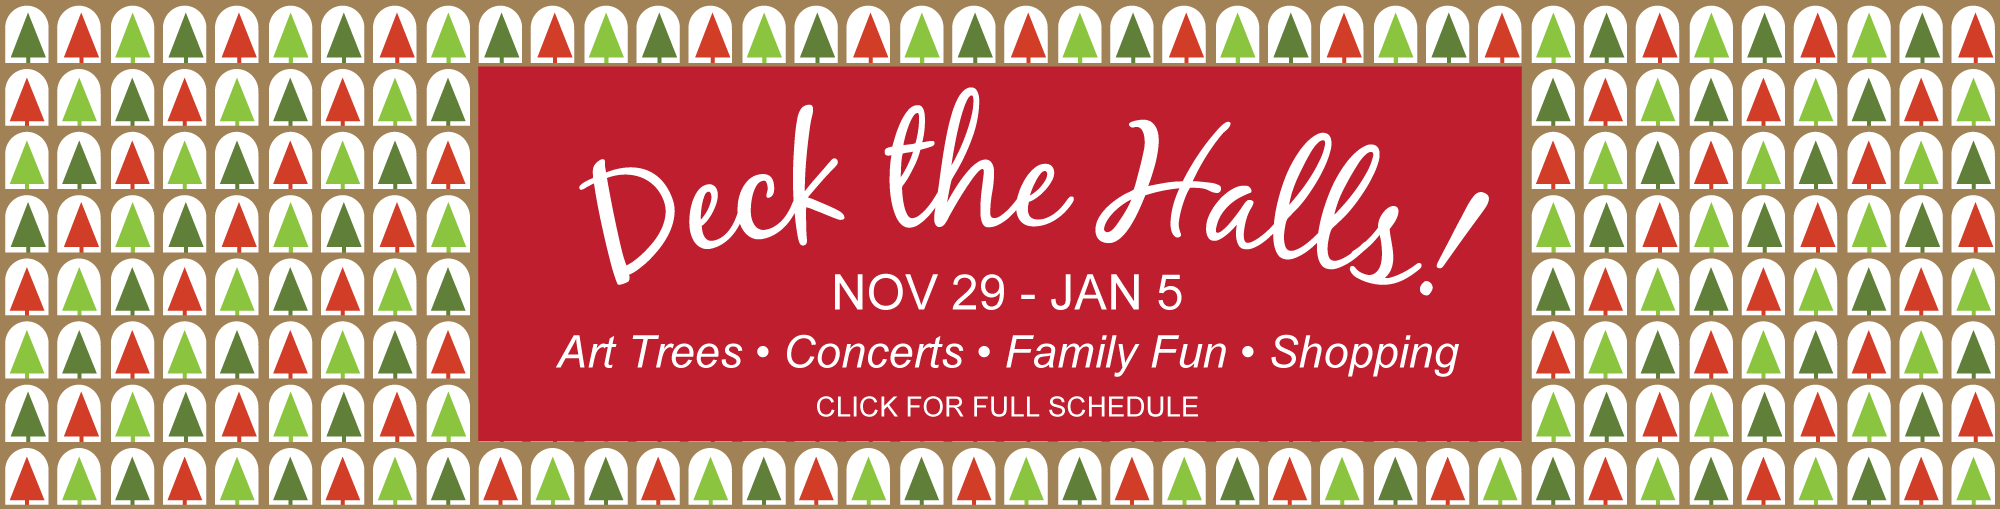 Deck the Halls! — Nov. 29 - Jan. 5 — Art Trees, Concertes, Family Fun & Shopping